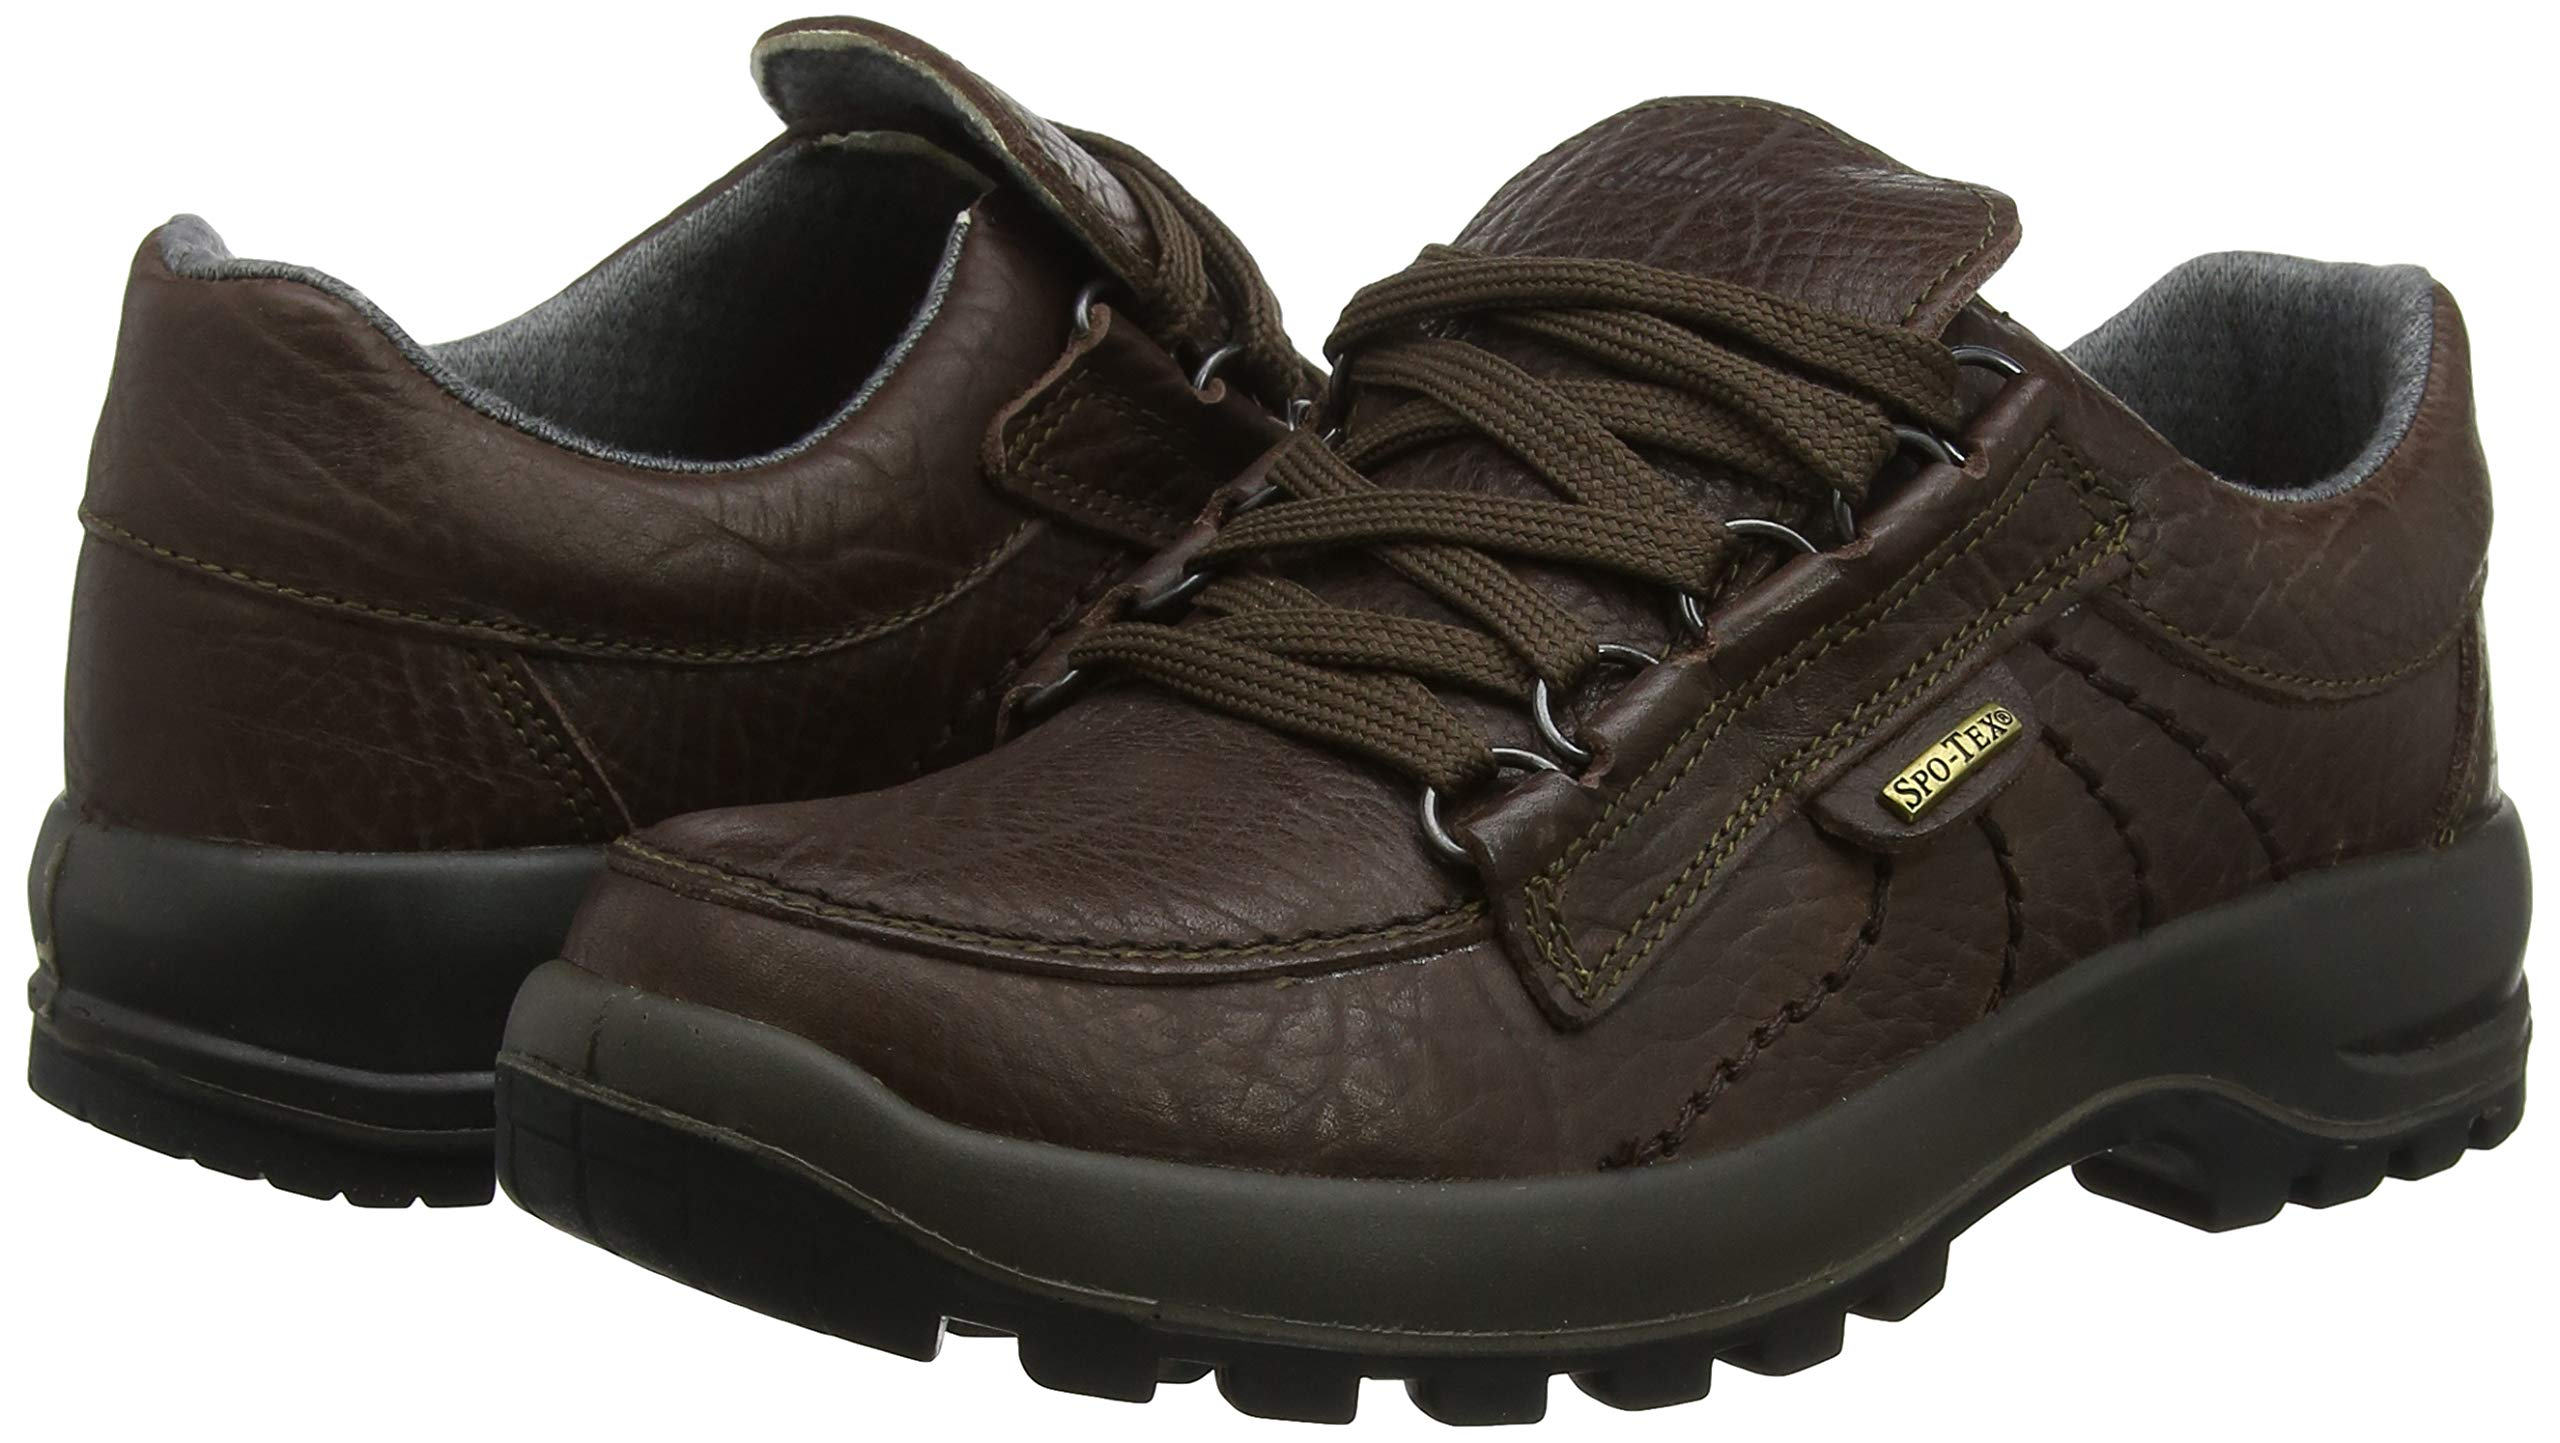 Grisport Adults Kielder Shoe Low Rise Hiking Boots 5